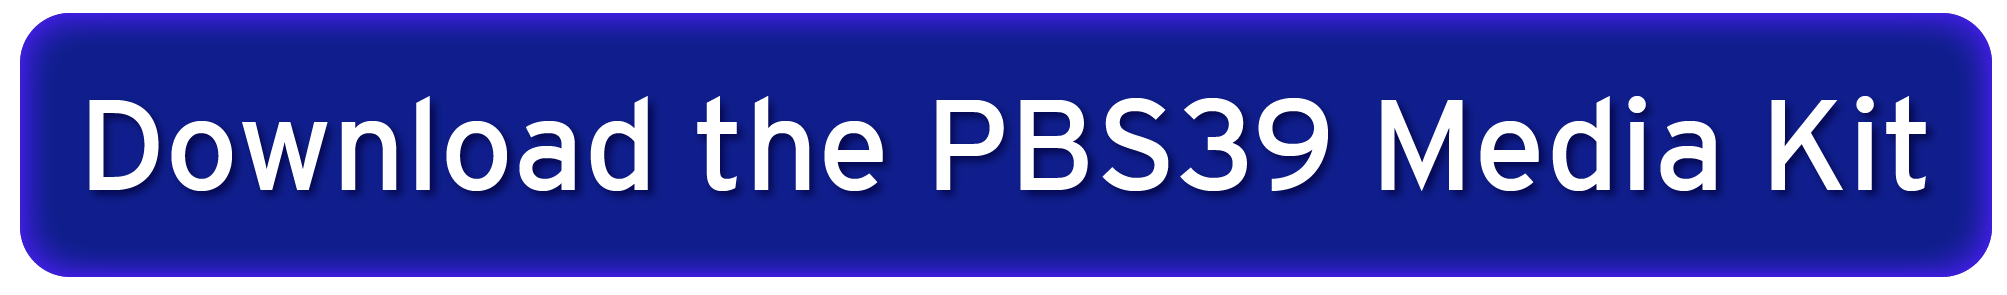 Download the PBS39 Media Kit